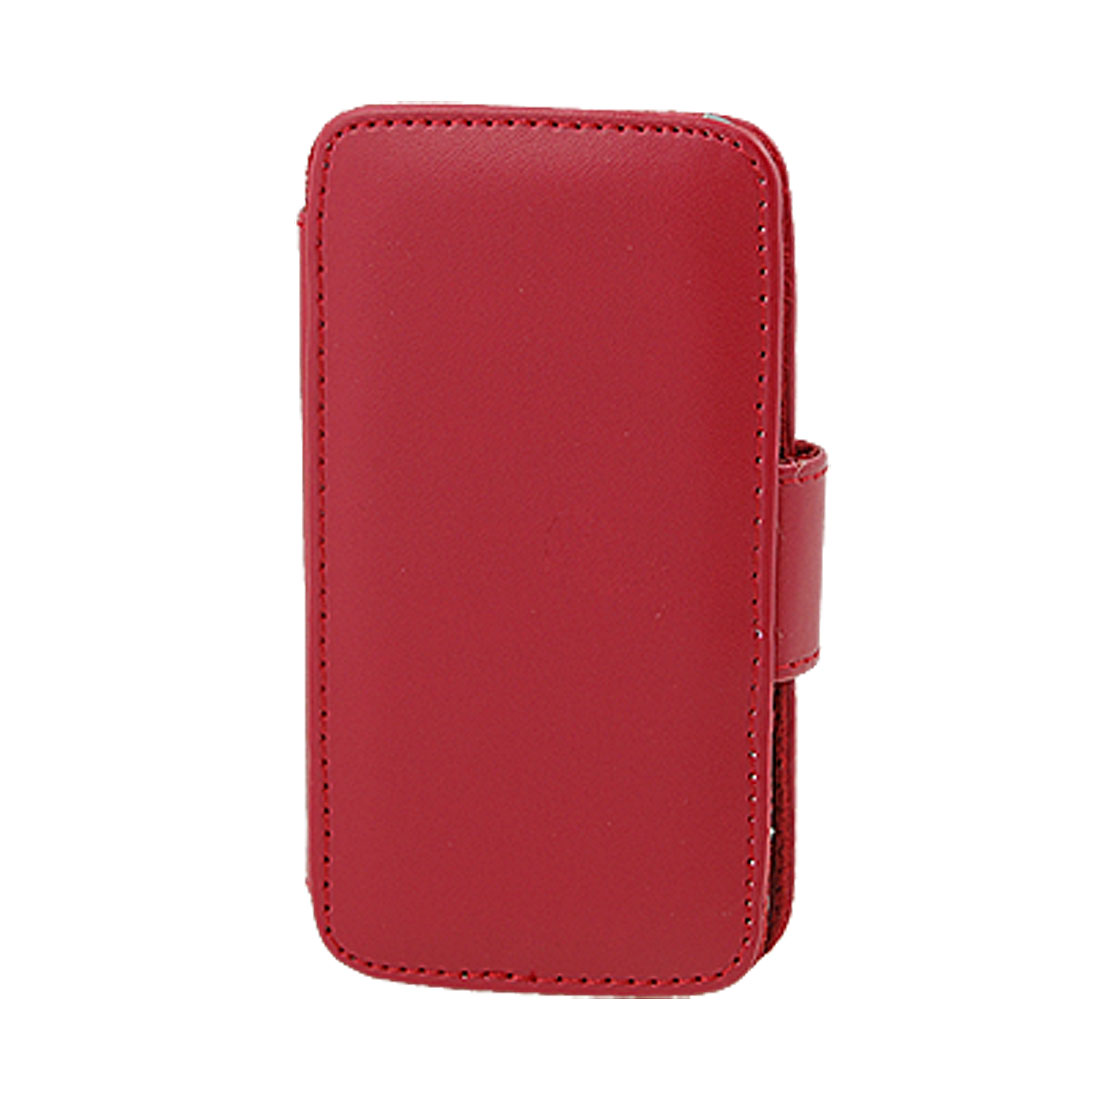 Red Faux Leather Plastic Holder Inside Case for iPhone 4 4G